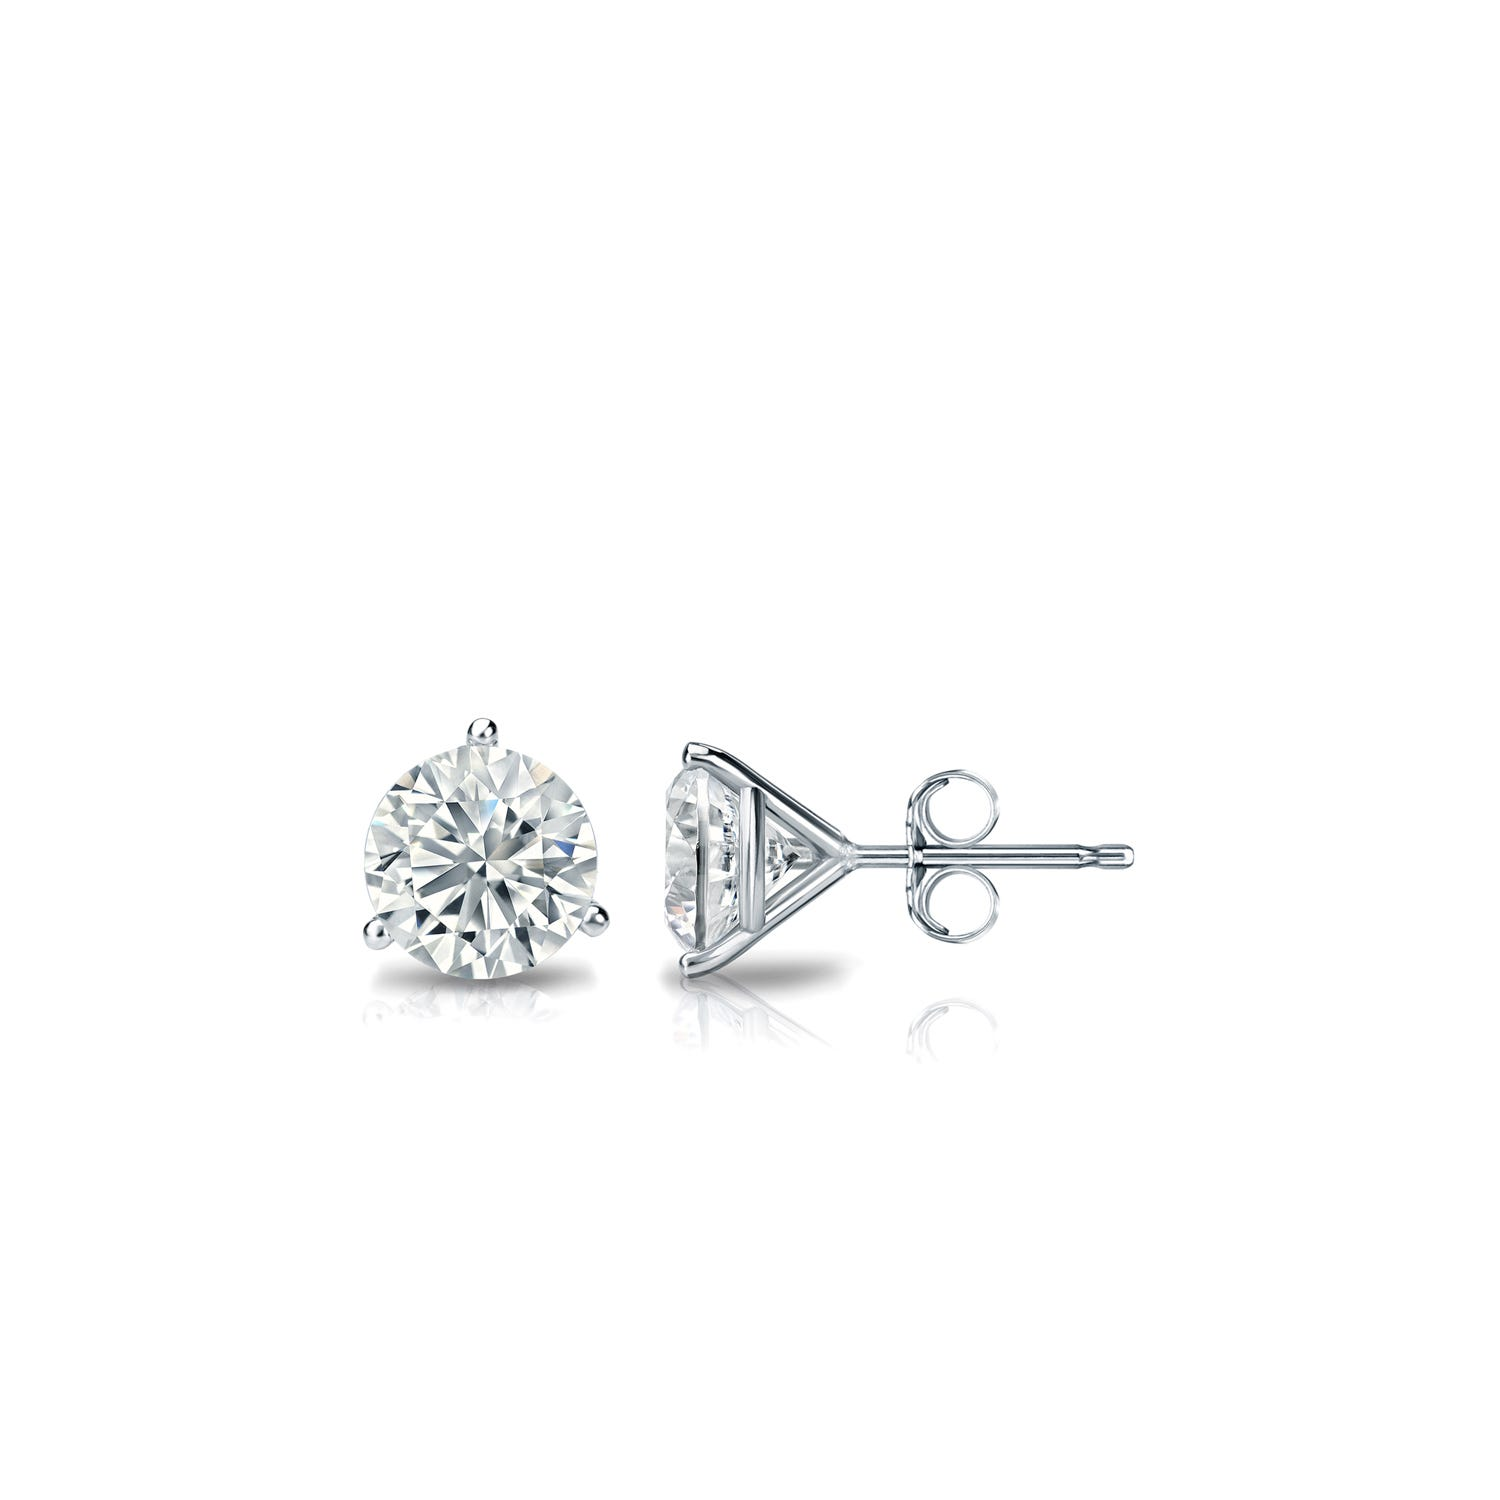 1/3 CTTW Round Diamond Solitaire Stud Earrings IJ SI2 in 18K White Gold 3-Prong Setting